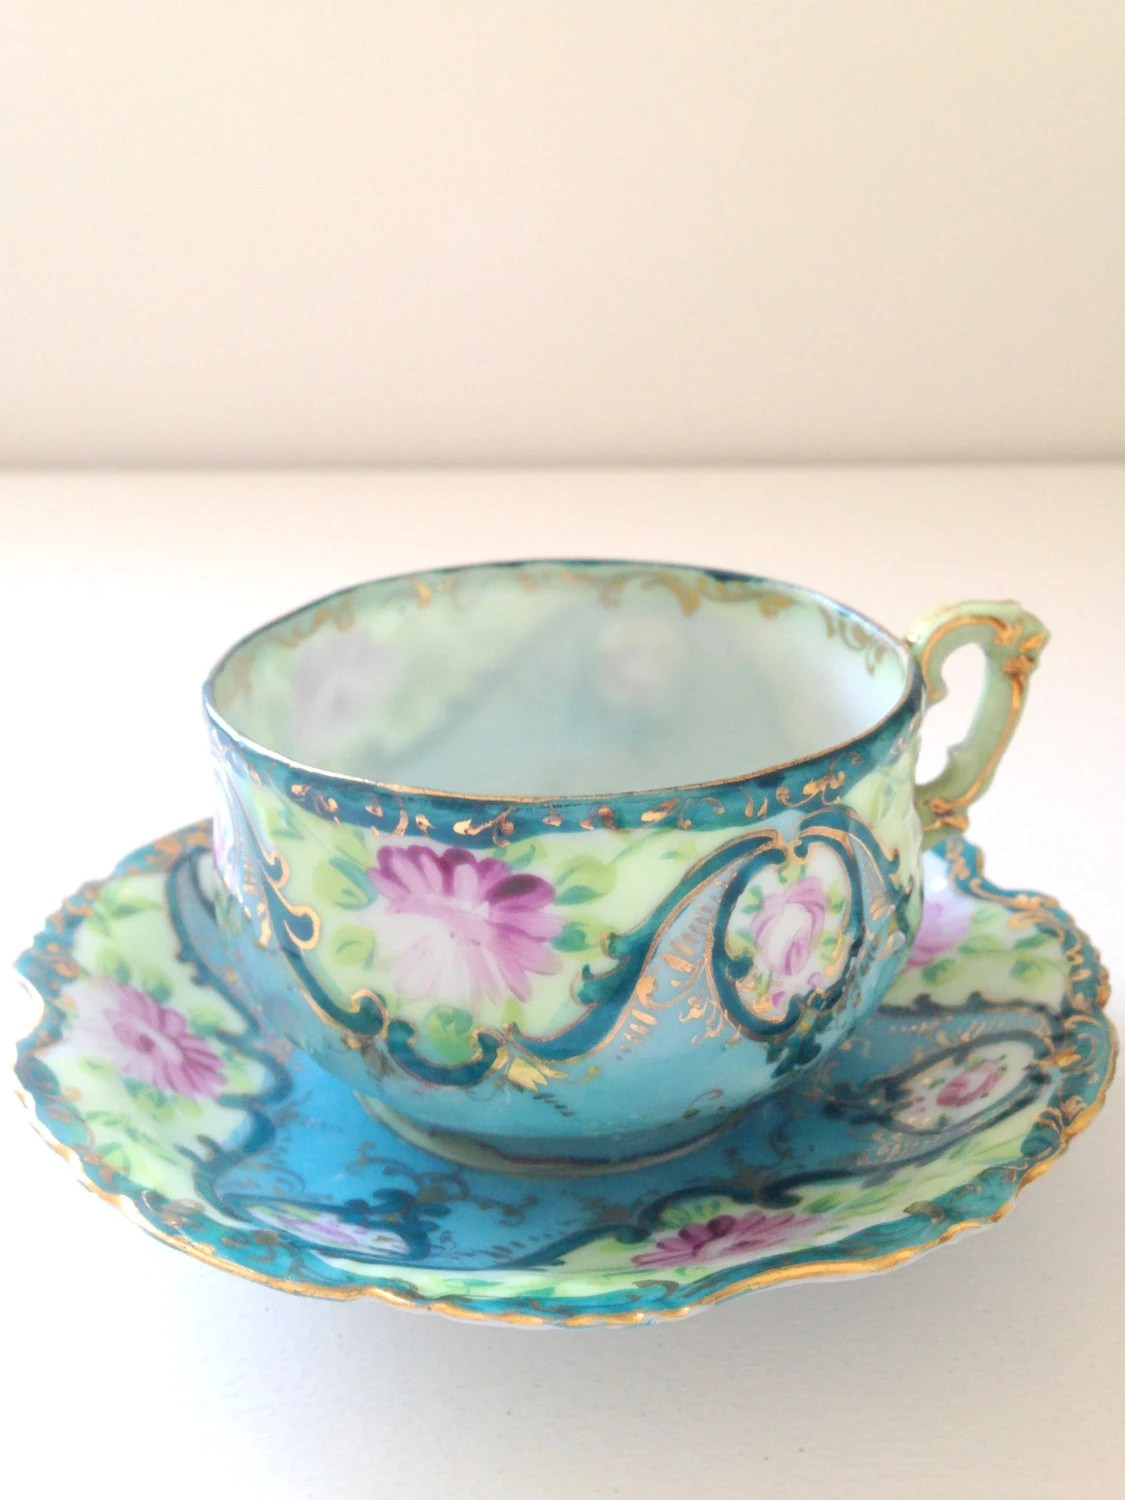 Vintage Handcrafted Porcelain Japan Fine China Tea Cup and